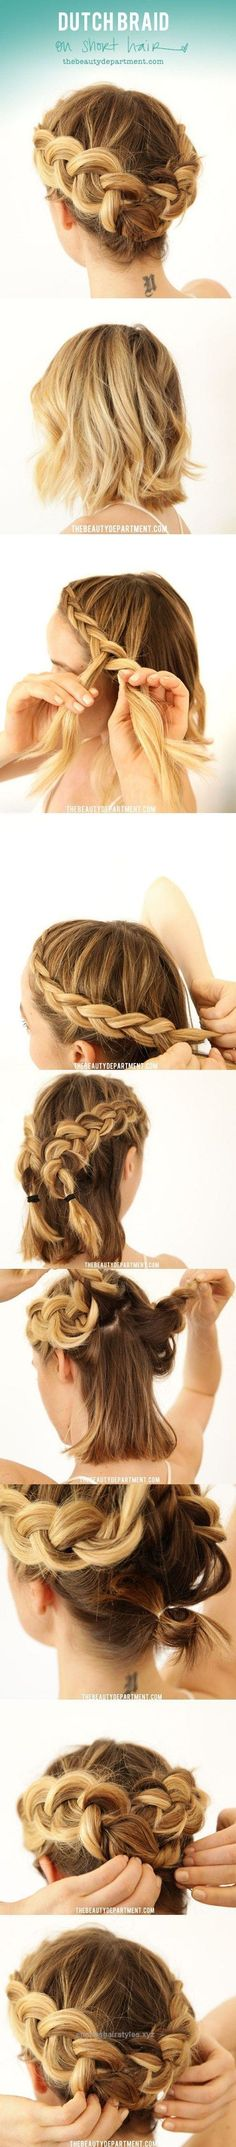 Check out this Crown Braid For Bob Length Hair Tutorial therighthairstyle… The post Crown Braid For Bob Length Hair Tutorial therighthairstyle…… appeared first on Emme's Hairstyles .